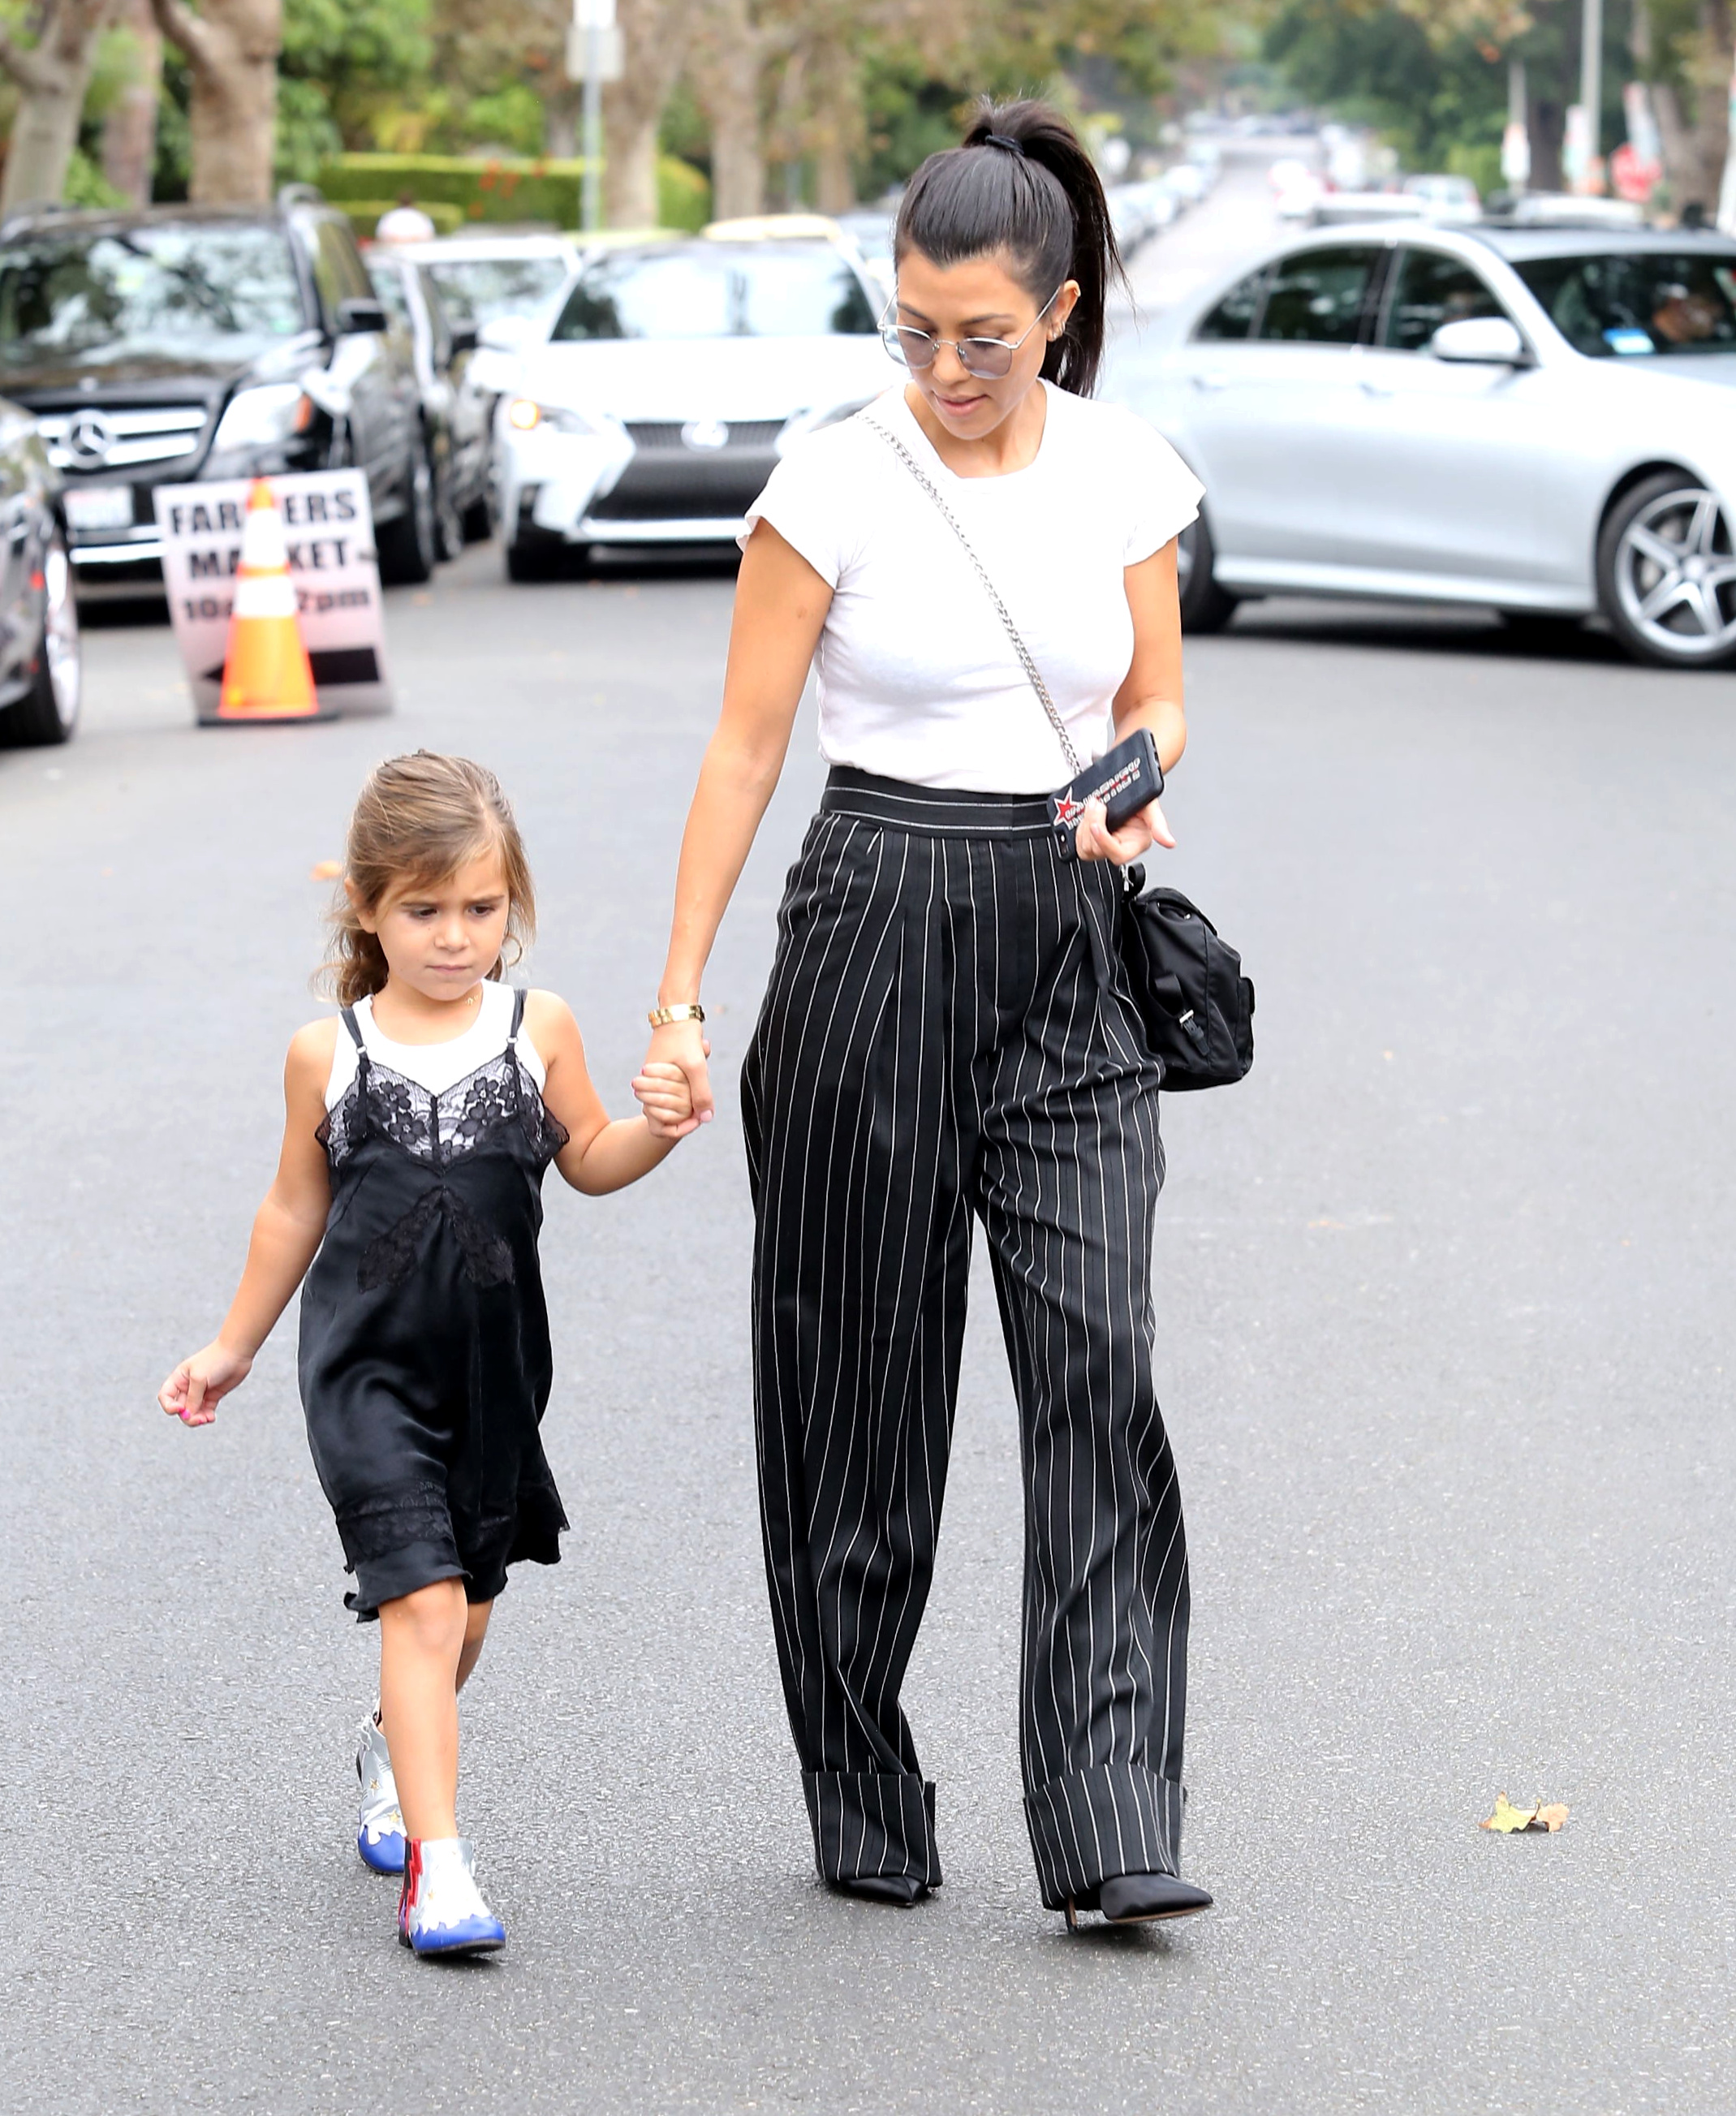 Kourtney Kardashian and her beautiful daughter Penelope got out for some Sunday afternoon socializing in Calabasas. September 17, 2017 X17online.com